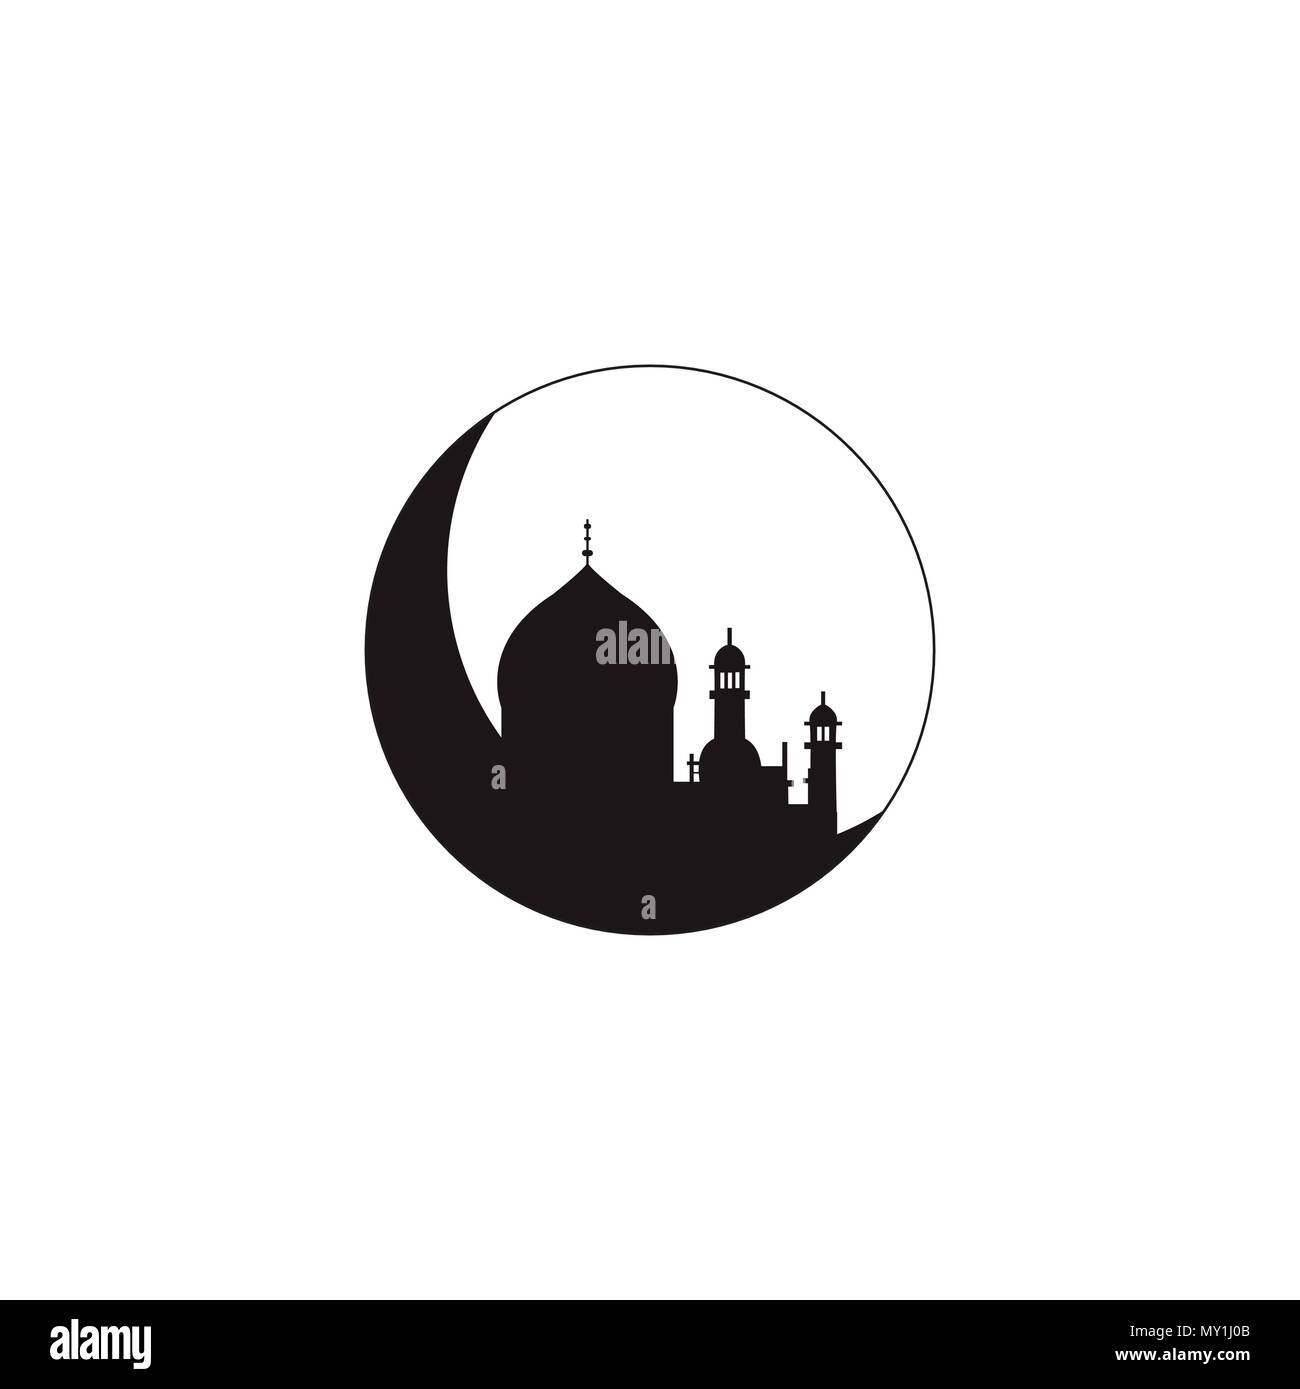 Silhouette of mosque with minarets on moon Crescent. Concept for Islamic Muslim holiday for celebration Mawlid birthday of prophet Muhammad, holy month of Ramadan Kareem, Eid Mubarak - Stock Image